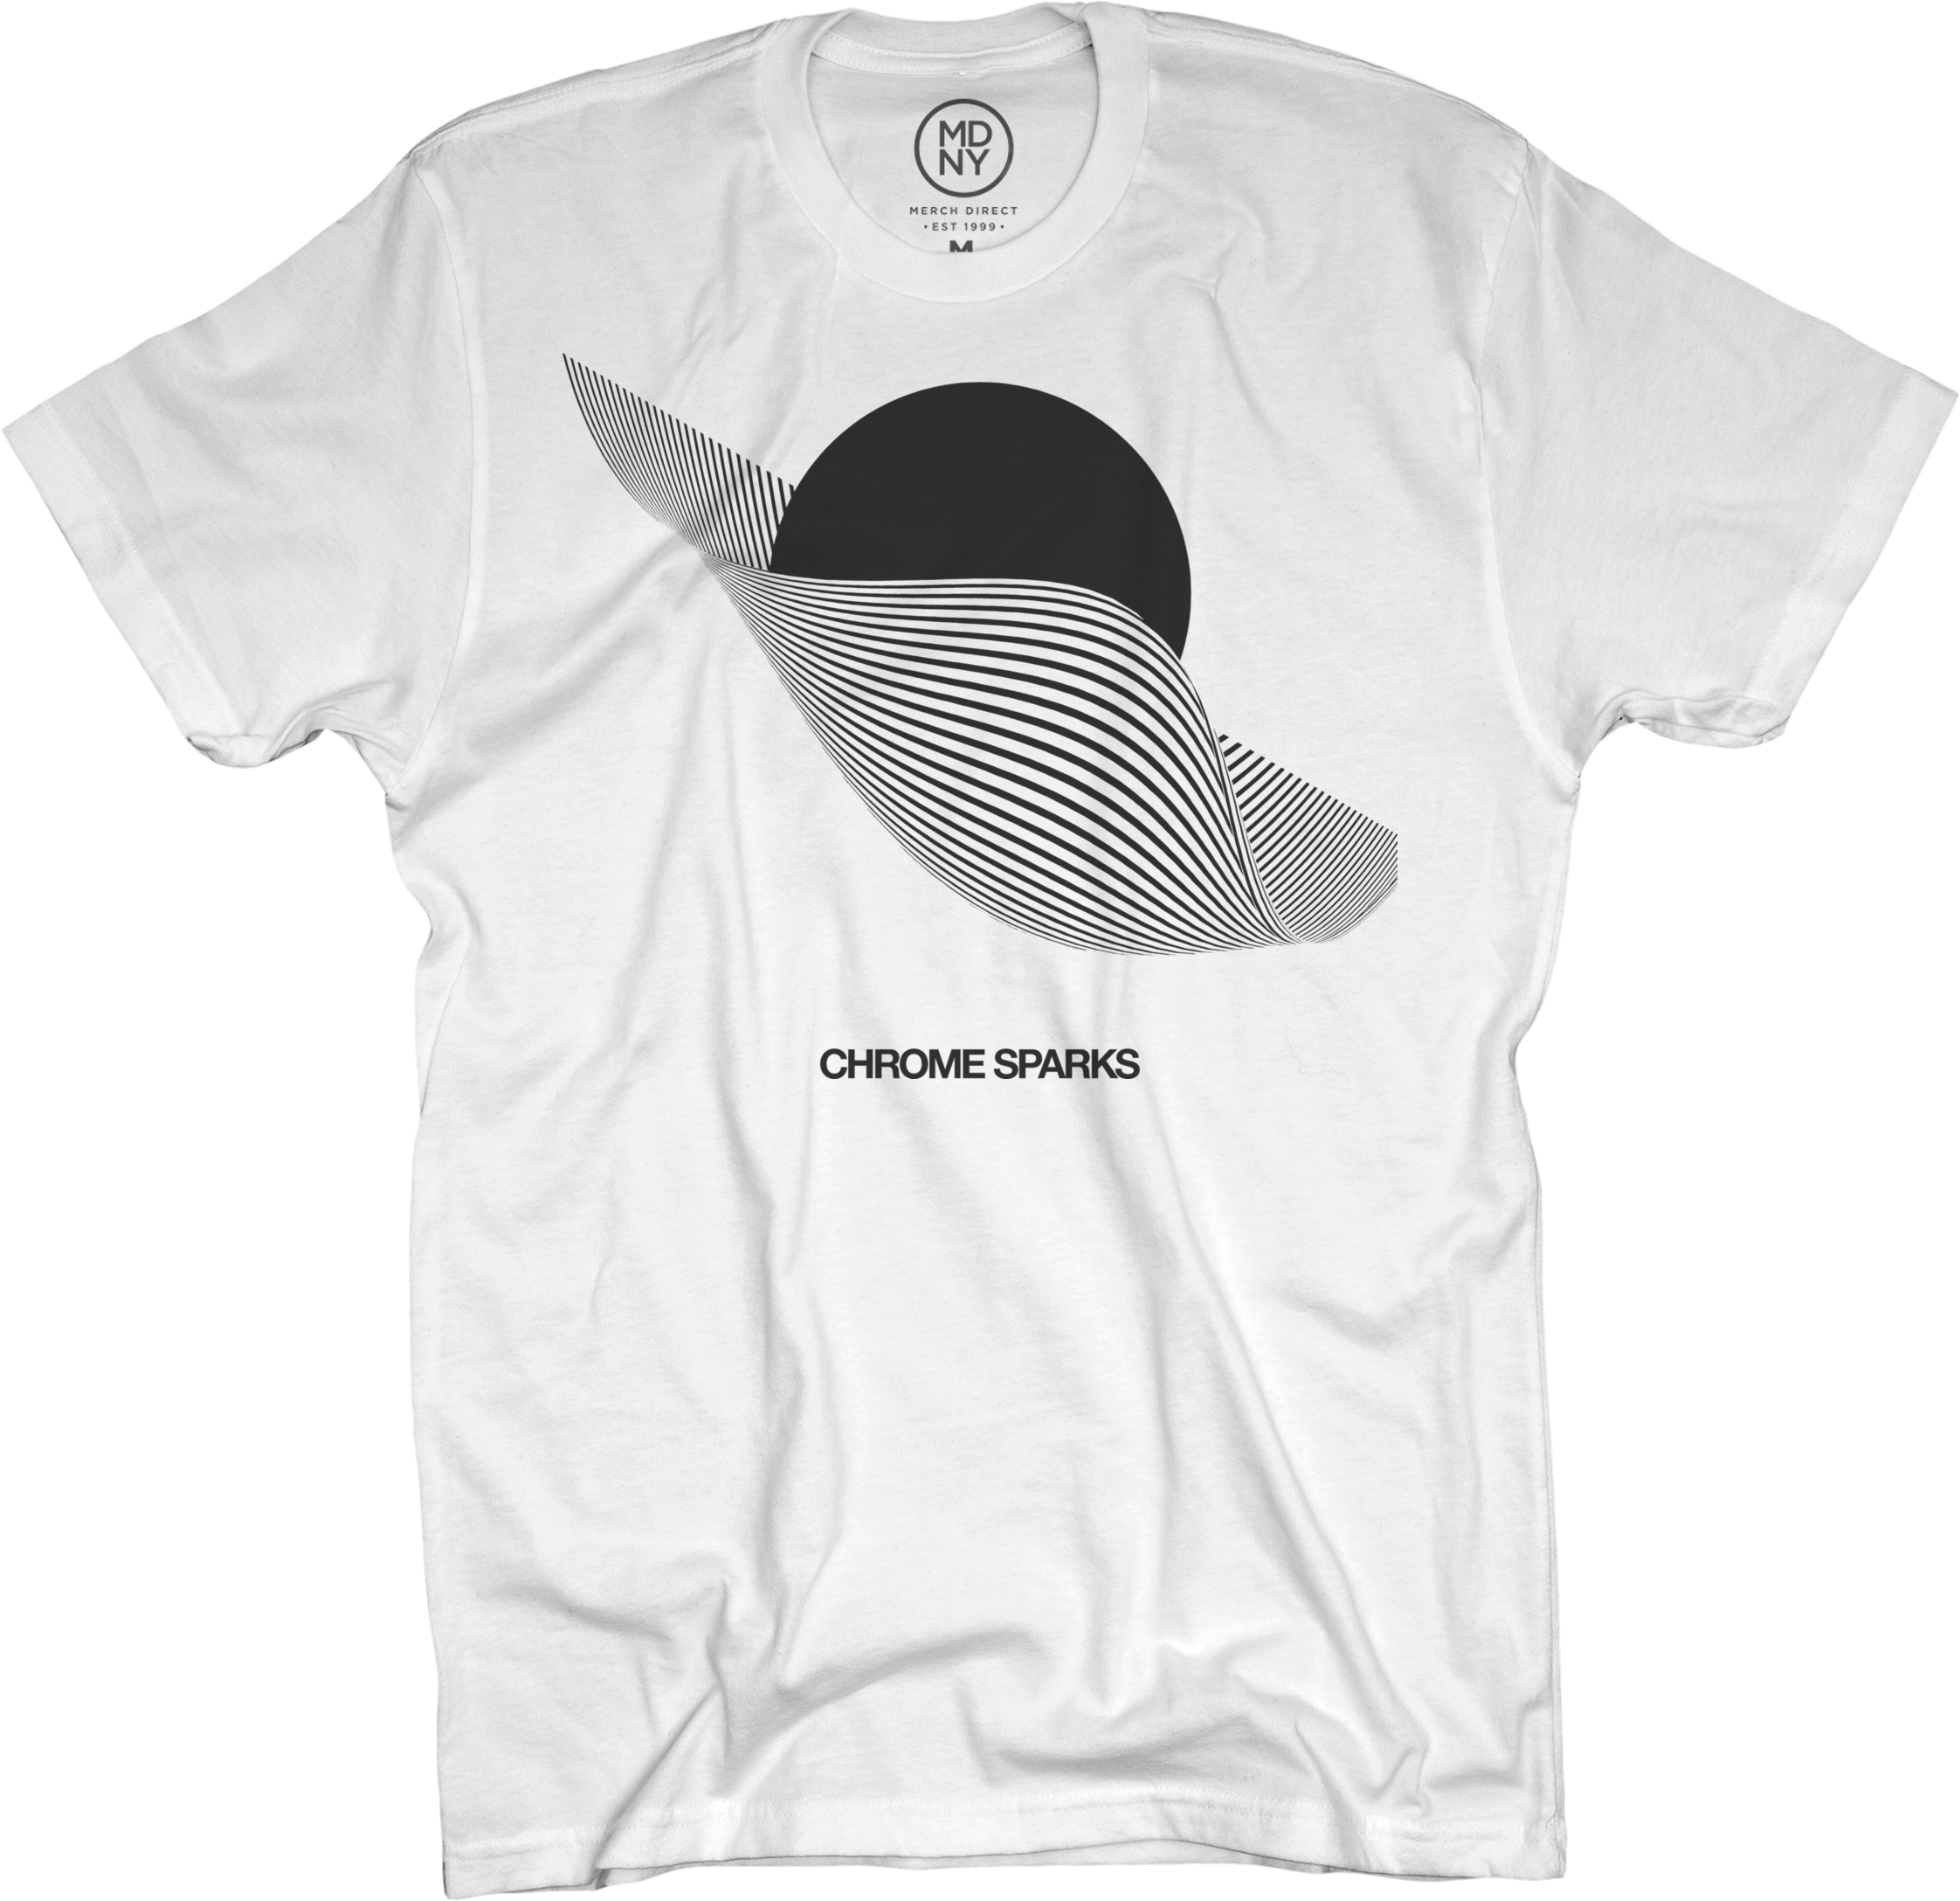 chrome-sparks-fall-dark-merch-1.png